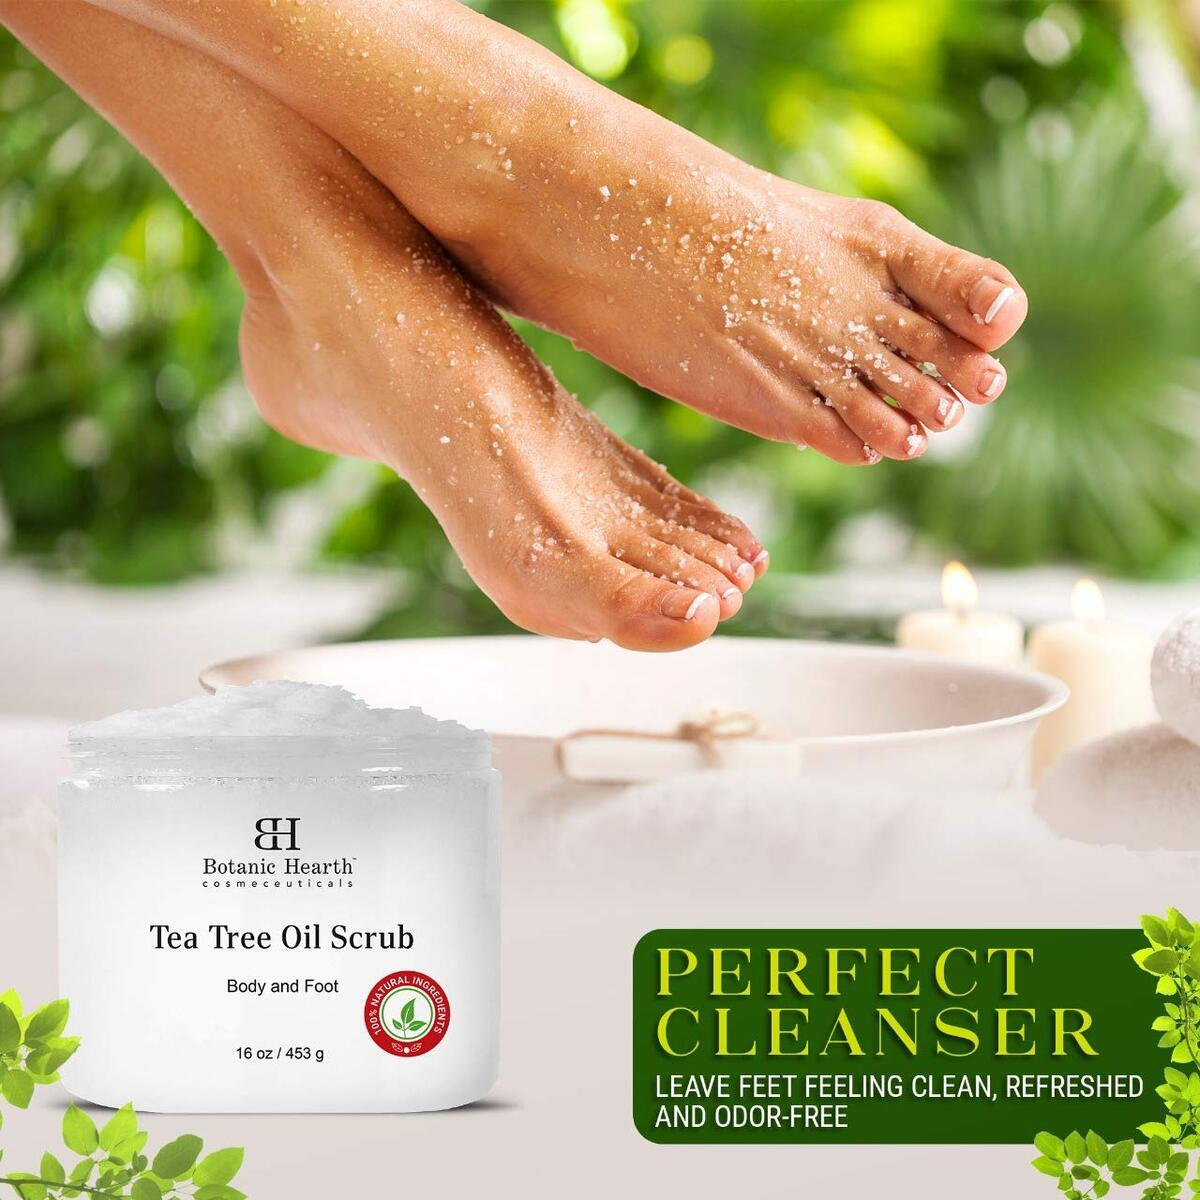 Tea Tree Scrub for Body and Foot – 100% Natural, Exfoliating Scrub Made with Pure Tea Tree Oil – Nourishes & Promotes Clear Skin, Great Gift Item - Economical Size - 16 oz